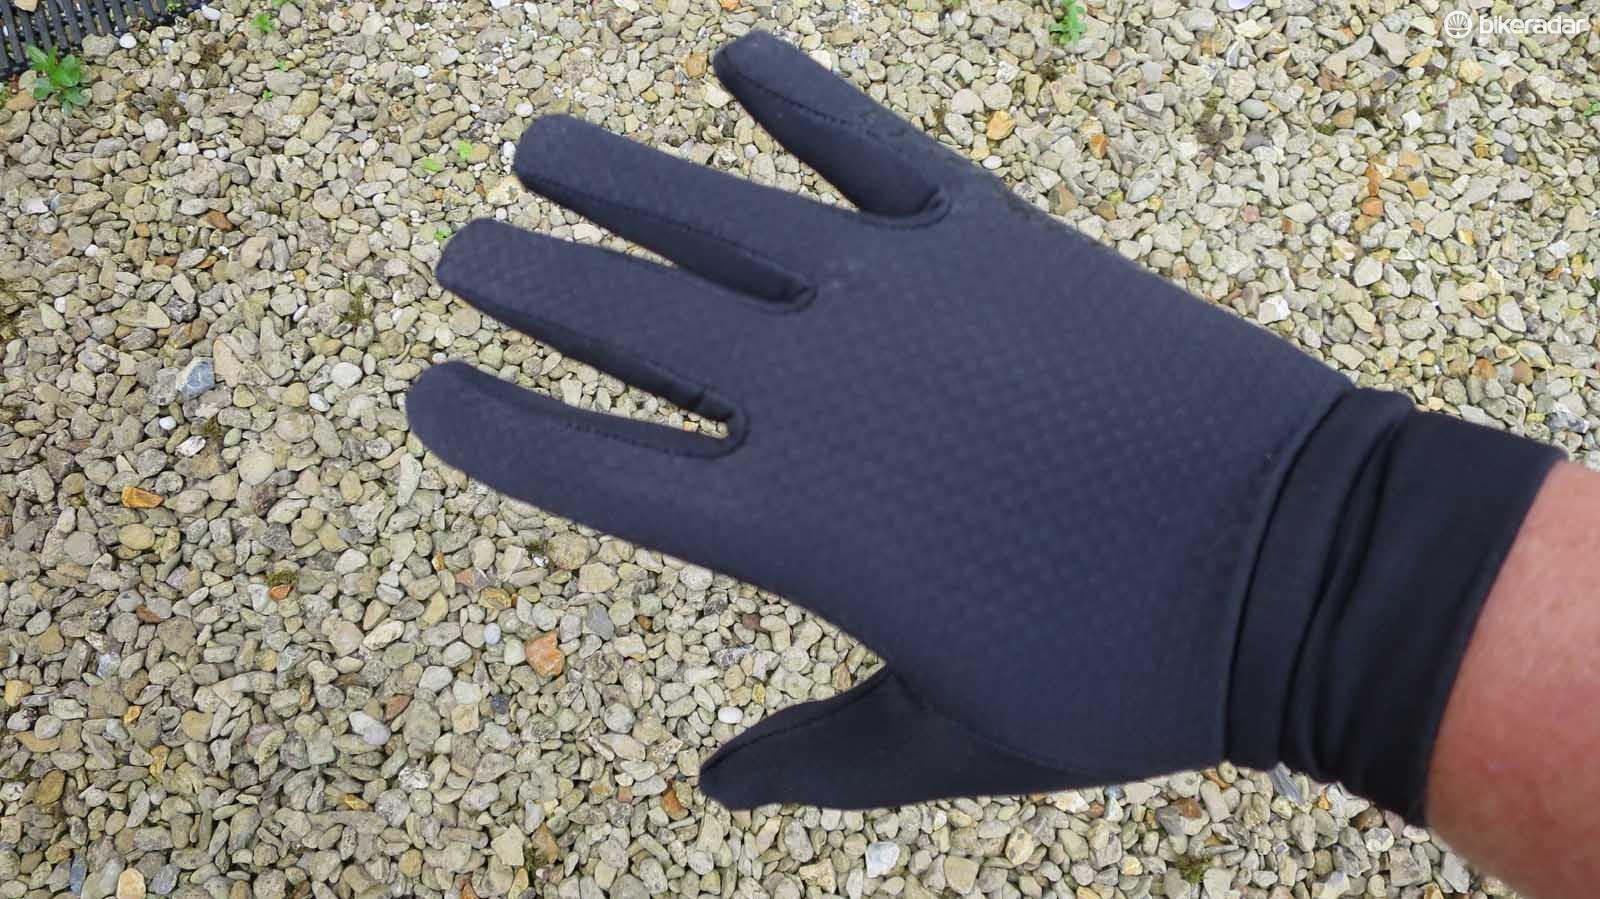 Chill proofing lightweight gloves…